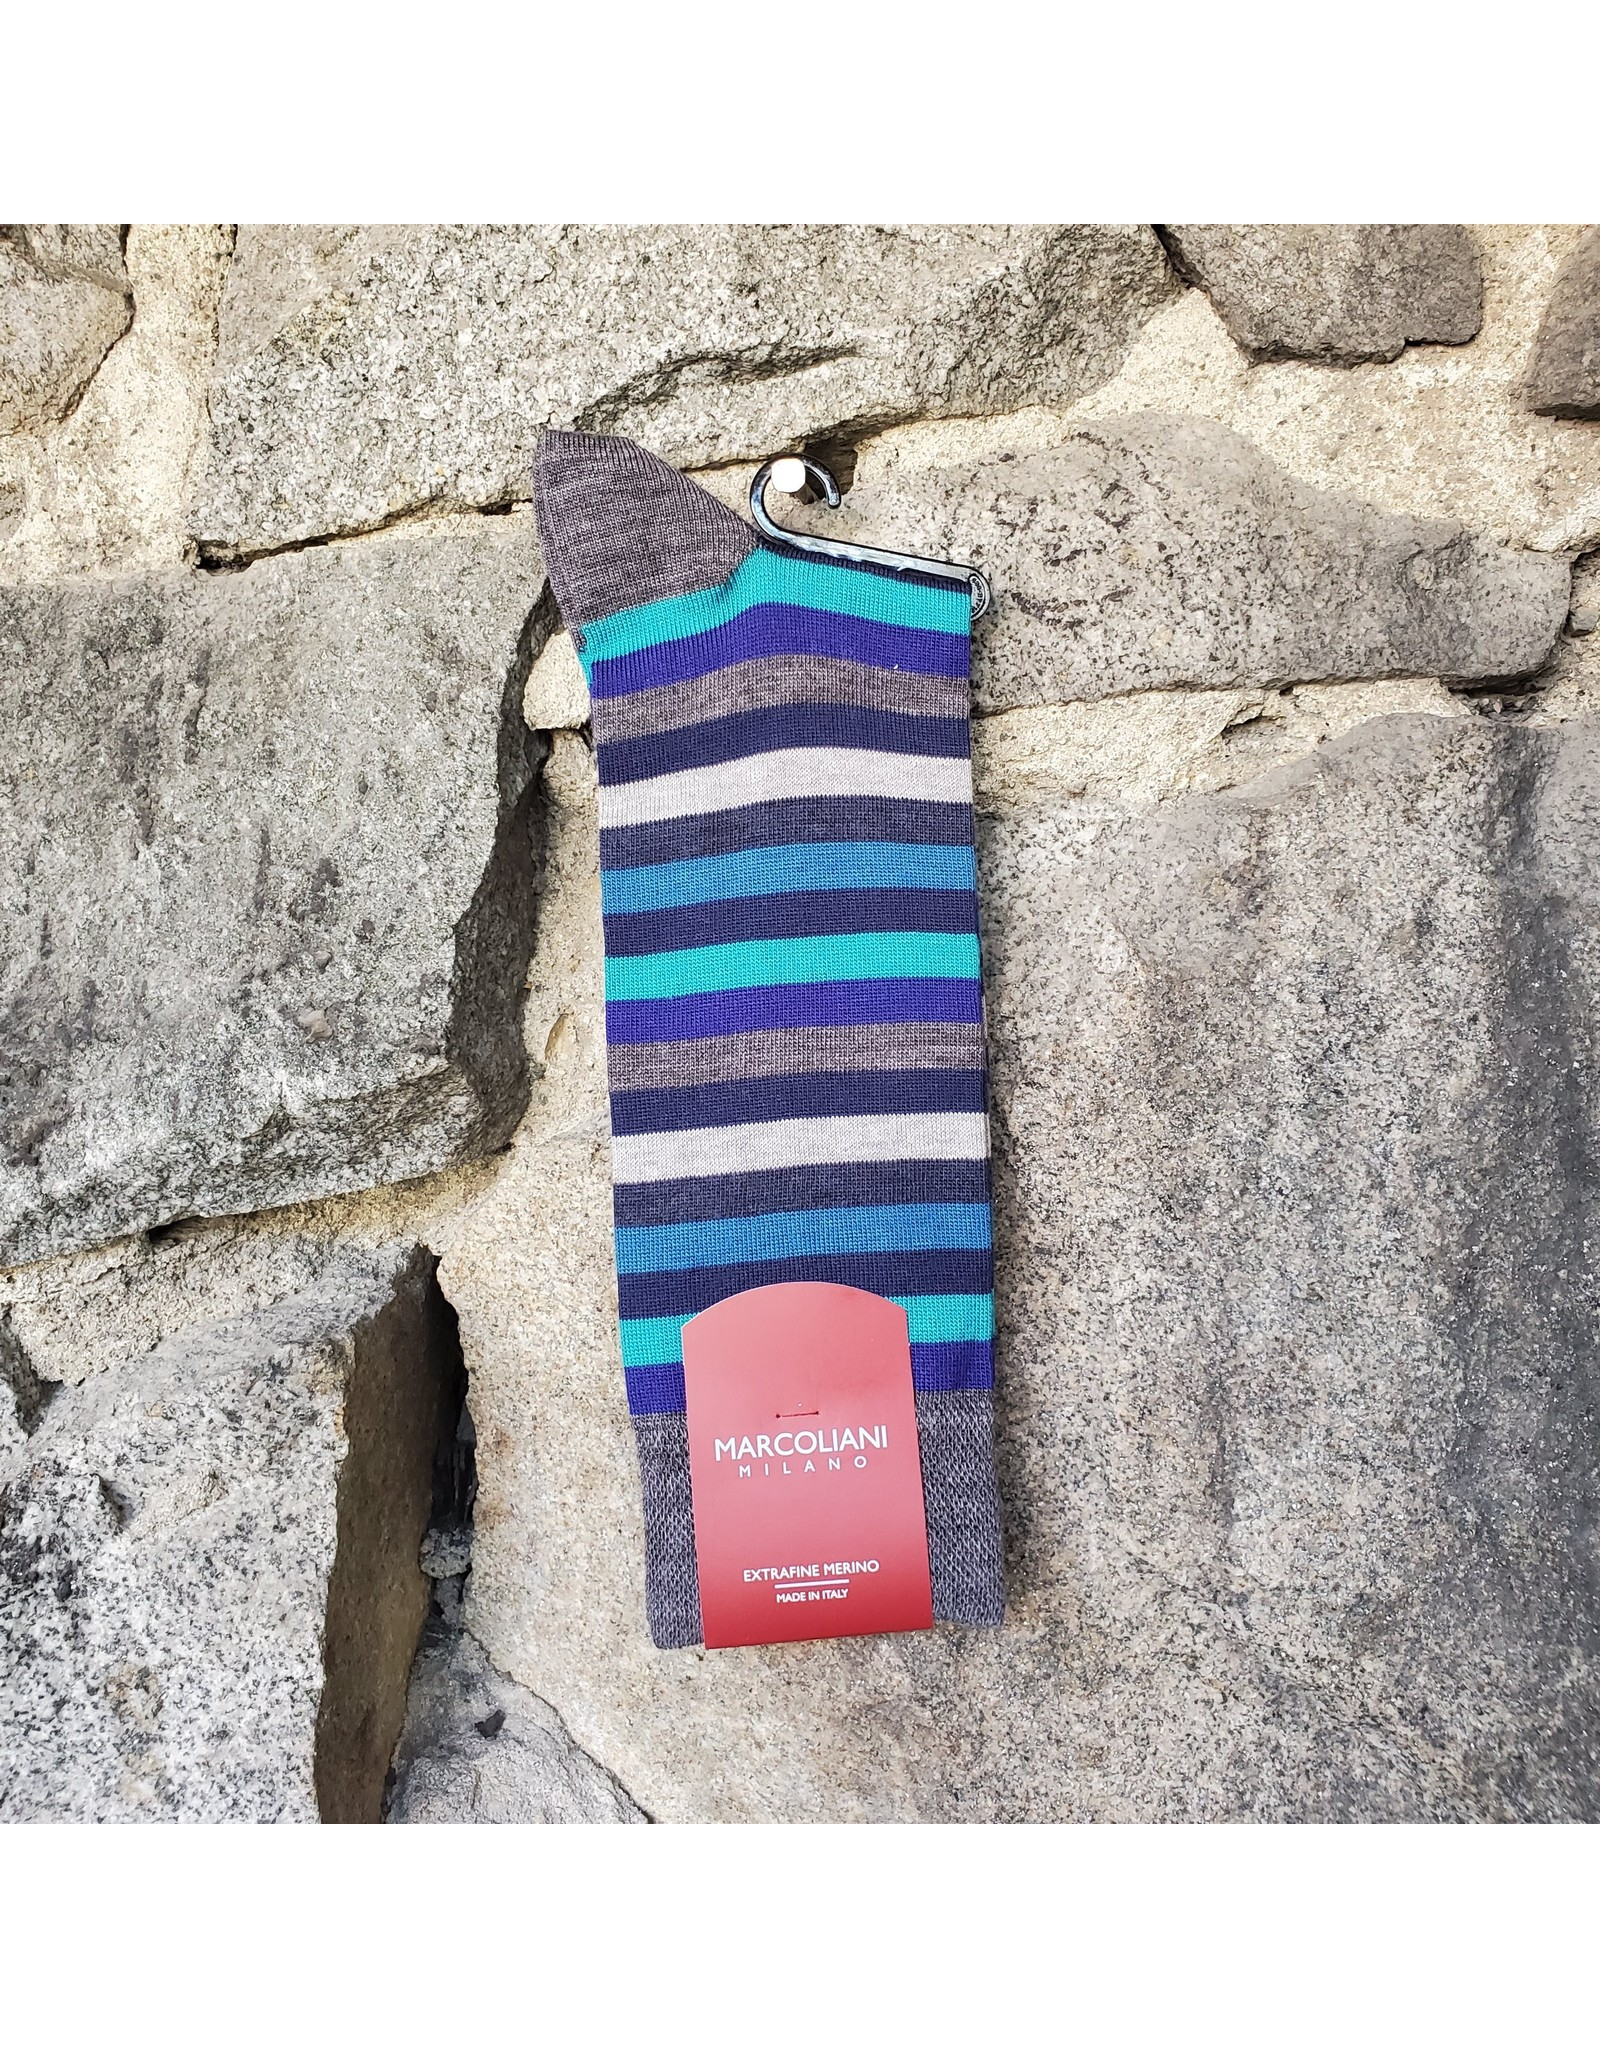 Marcoliani Marcoliani Extrafine Merino Socks - Blue Stripe Mix